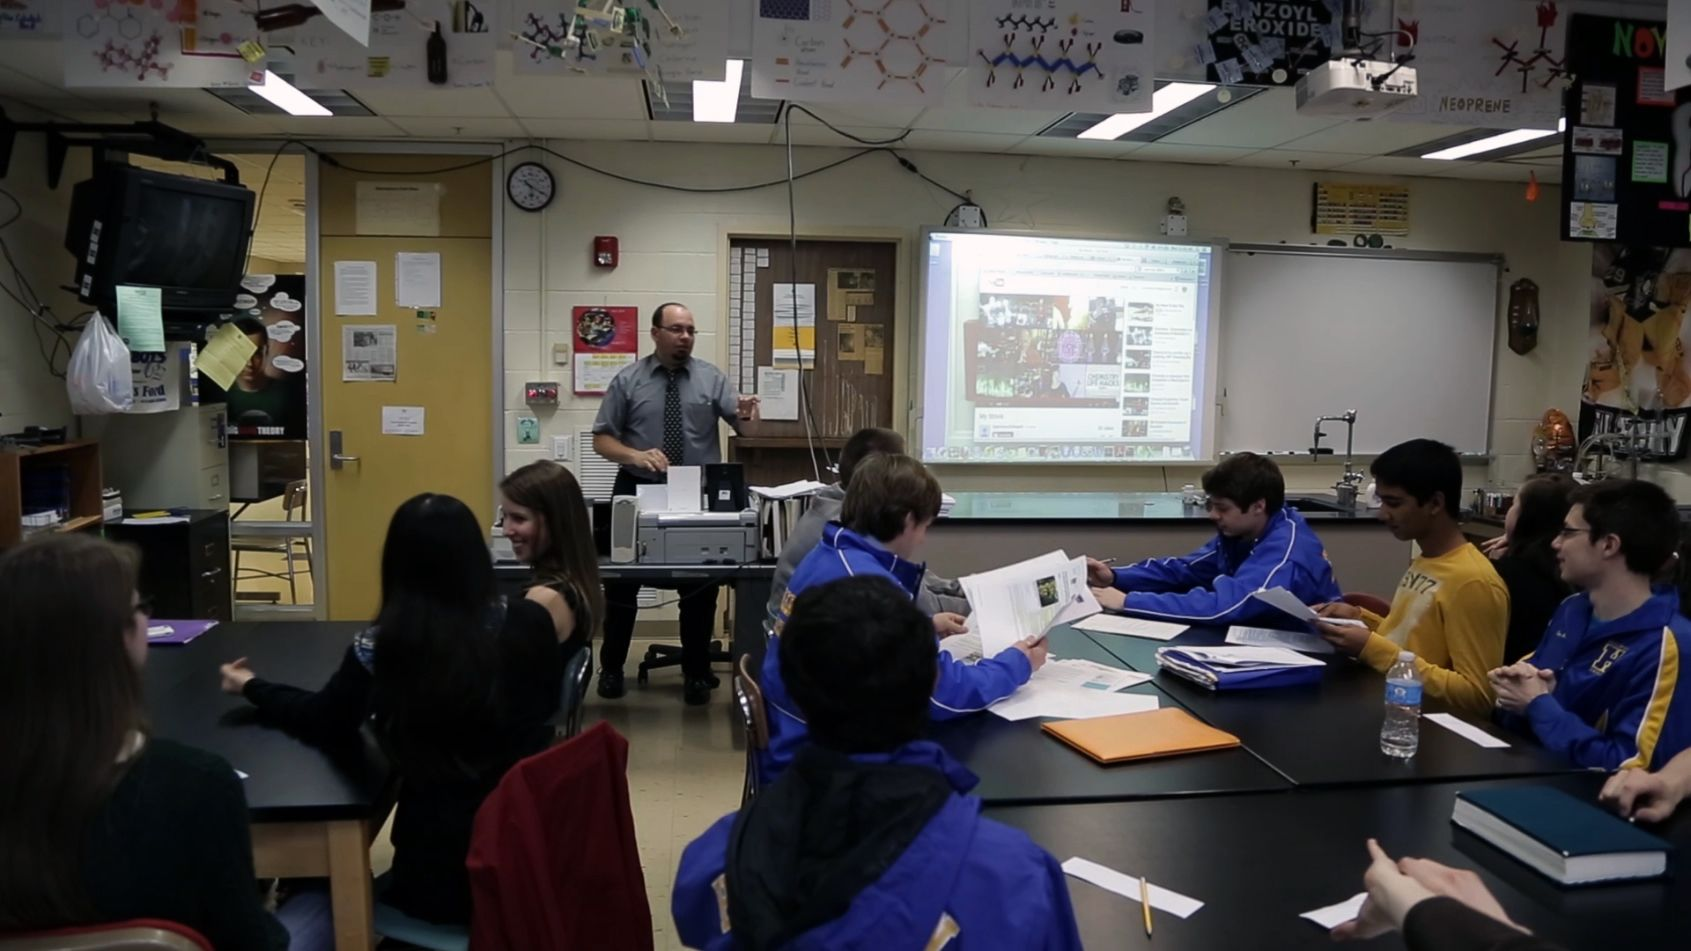 A classroom full with students and a teacher. Teacher is teaching the students with the presentation in front of the classroom.